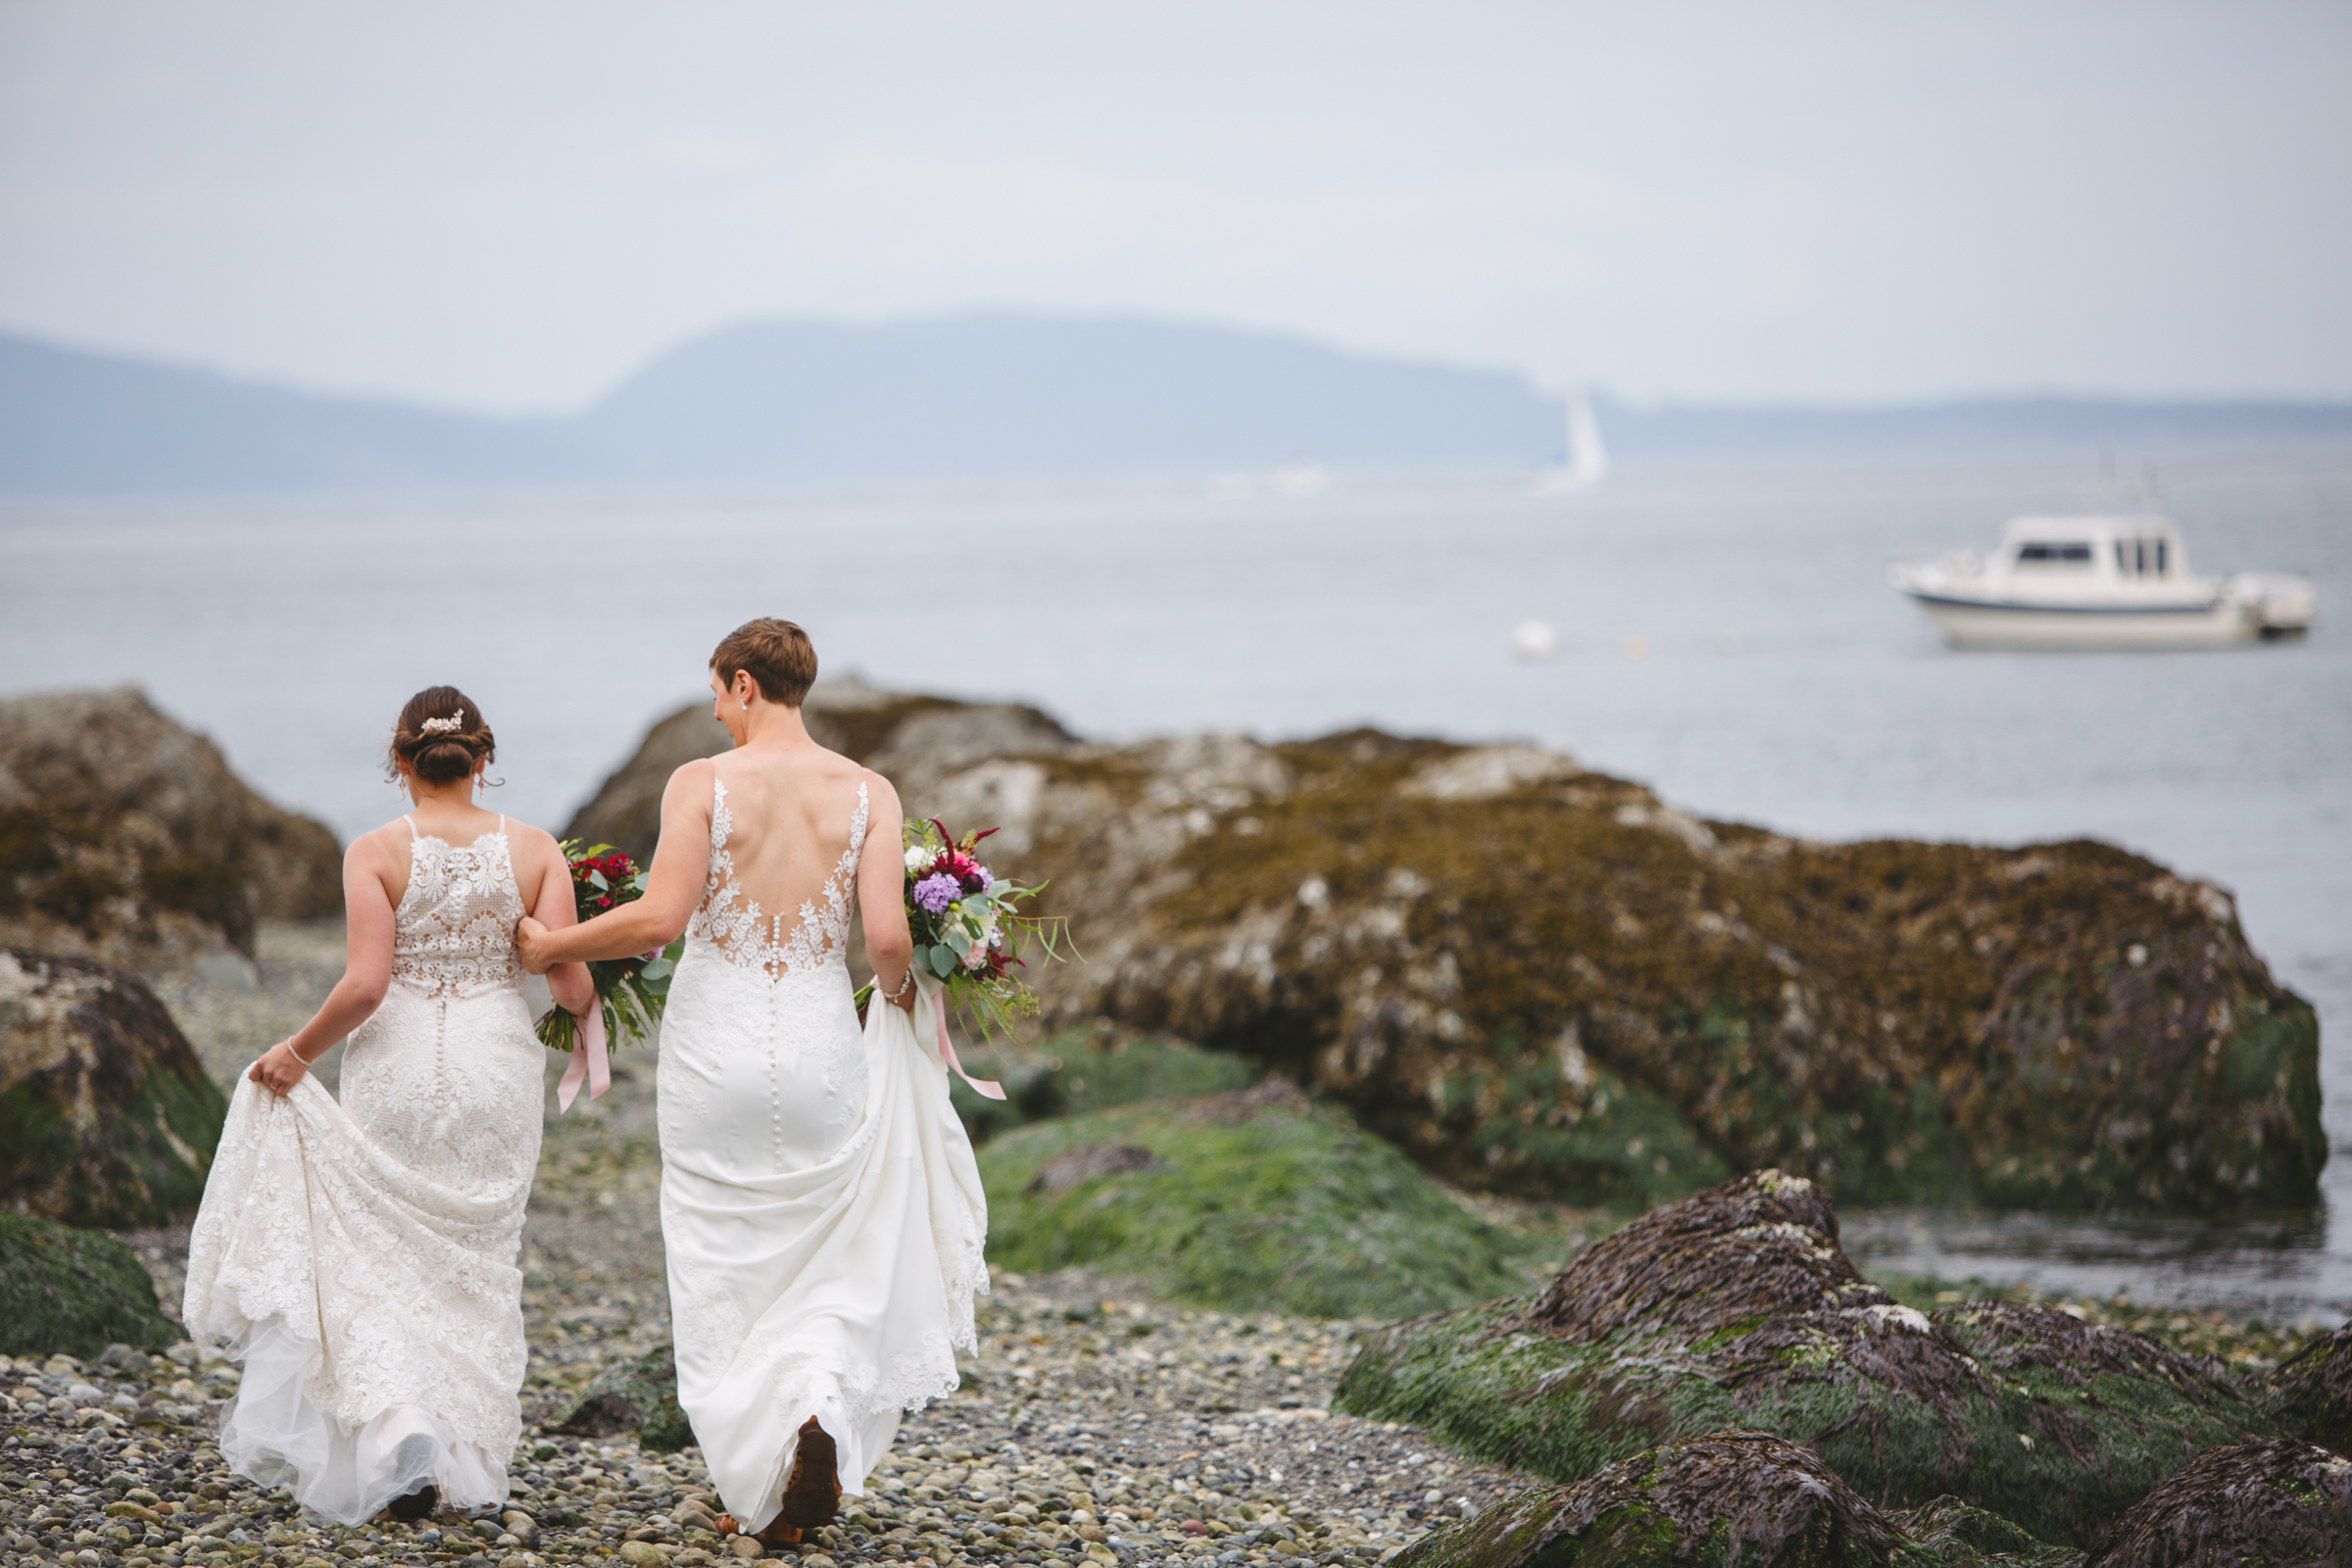 Two brides on island waterfront - photo by Satya Curcio Photography